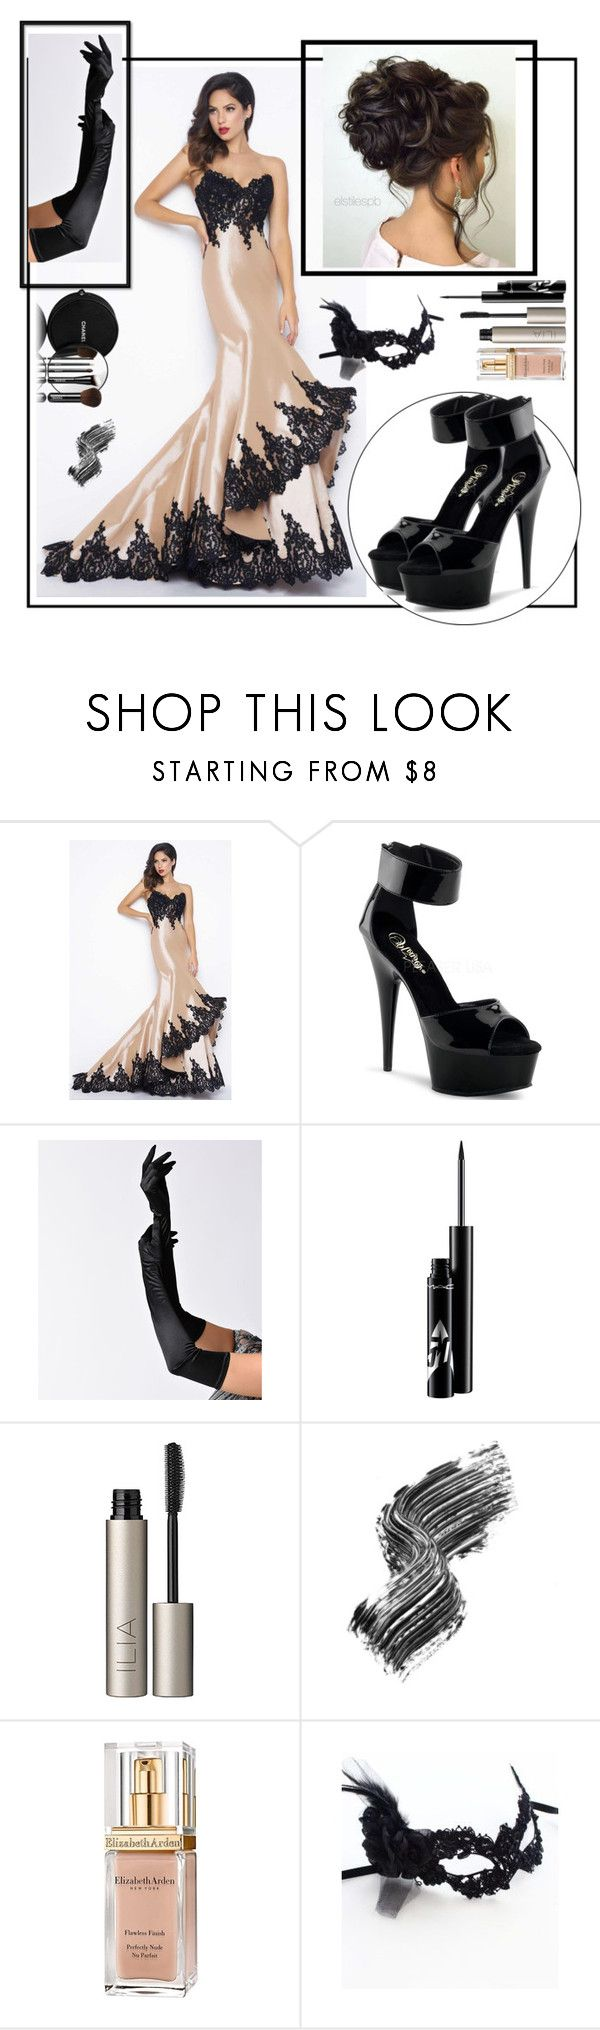 """""""Masked Ball"""" by janemorguedoe ❤ liked on Polyvore featuring Mac Duggal, Chanel, Ilia, Illamasqua and Elizabeth Arden"""